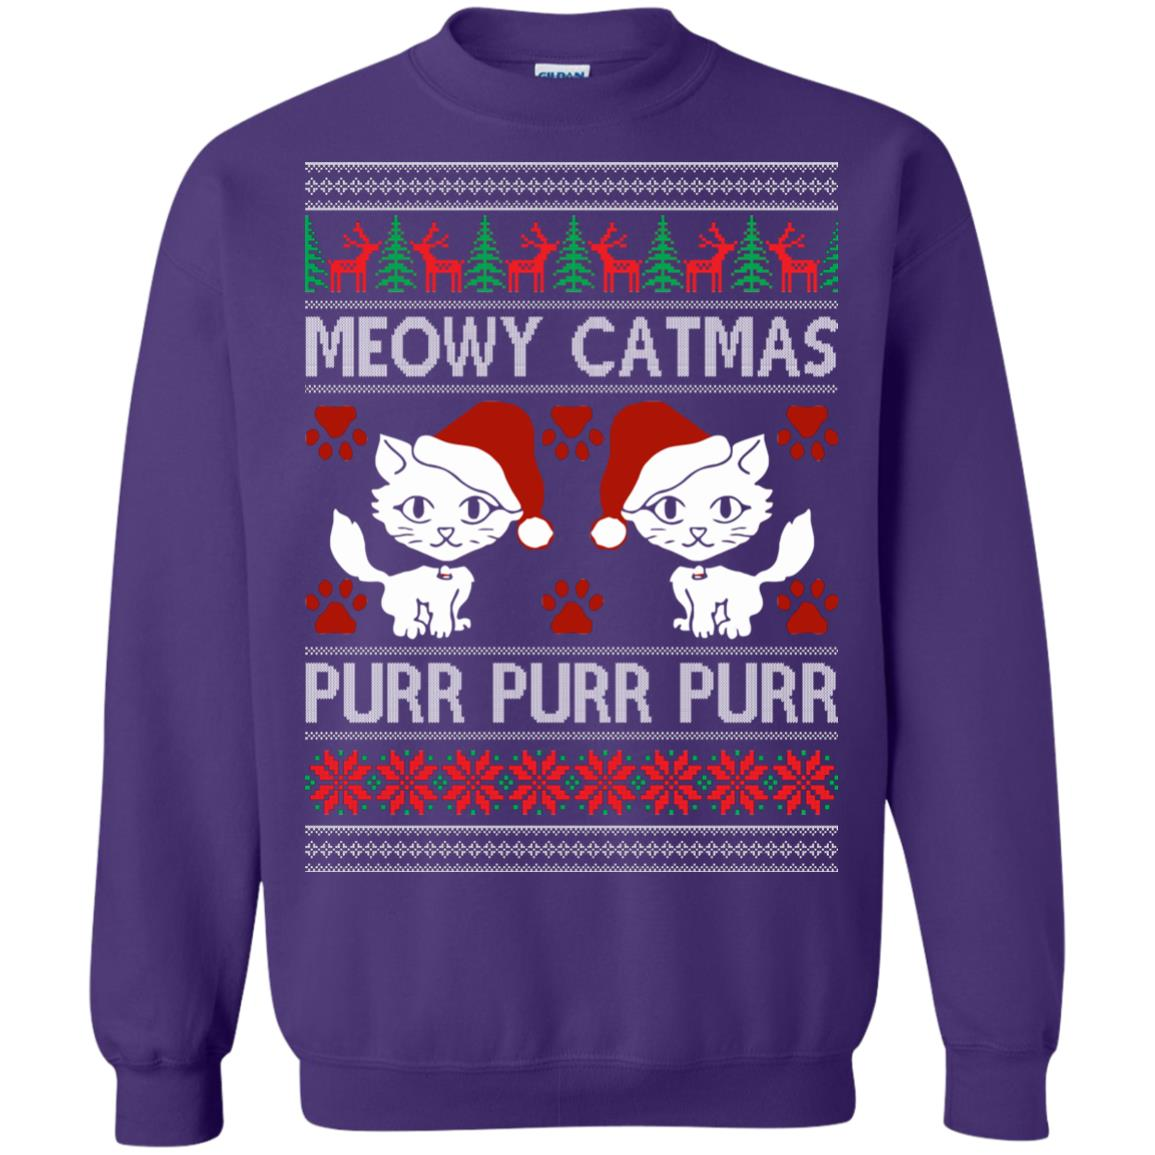 image 1171px Meowy Catmas Purr Purr Christmas Sweater, Cat Lover Sweatshirt